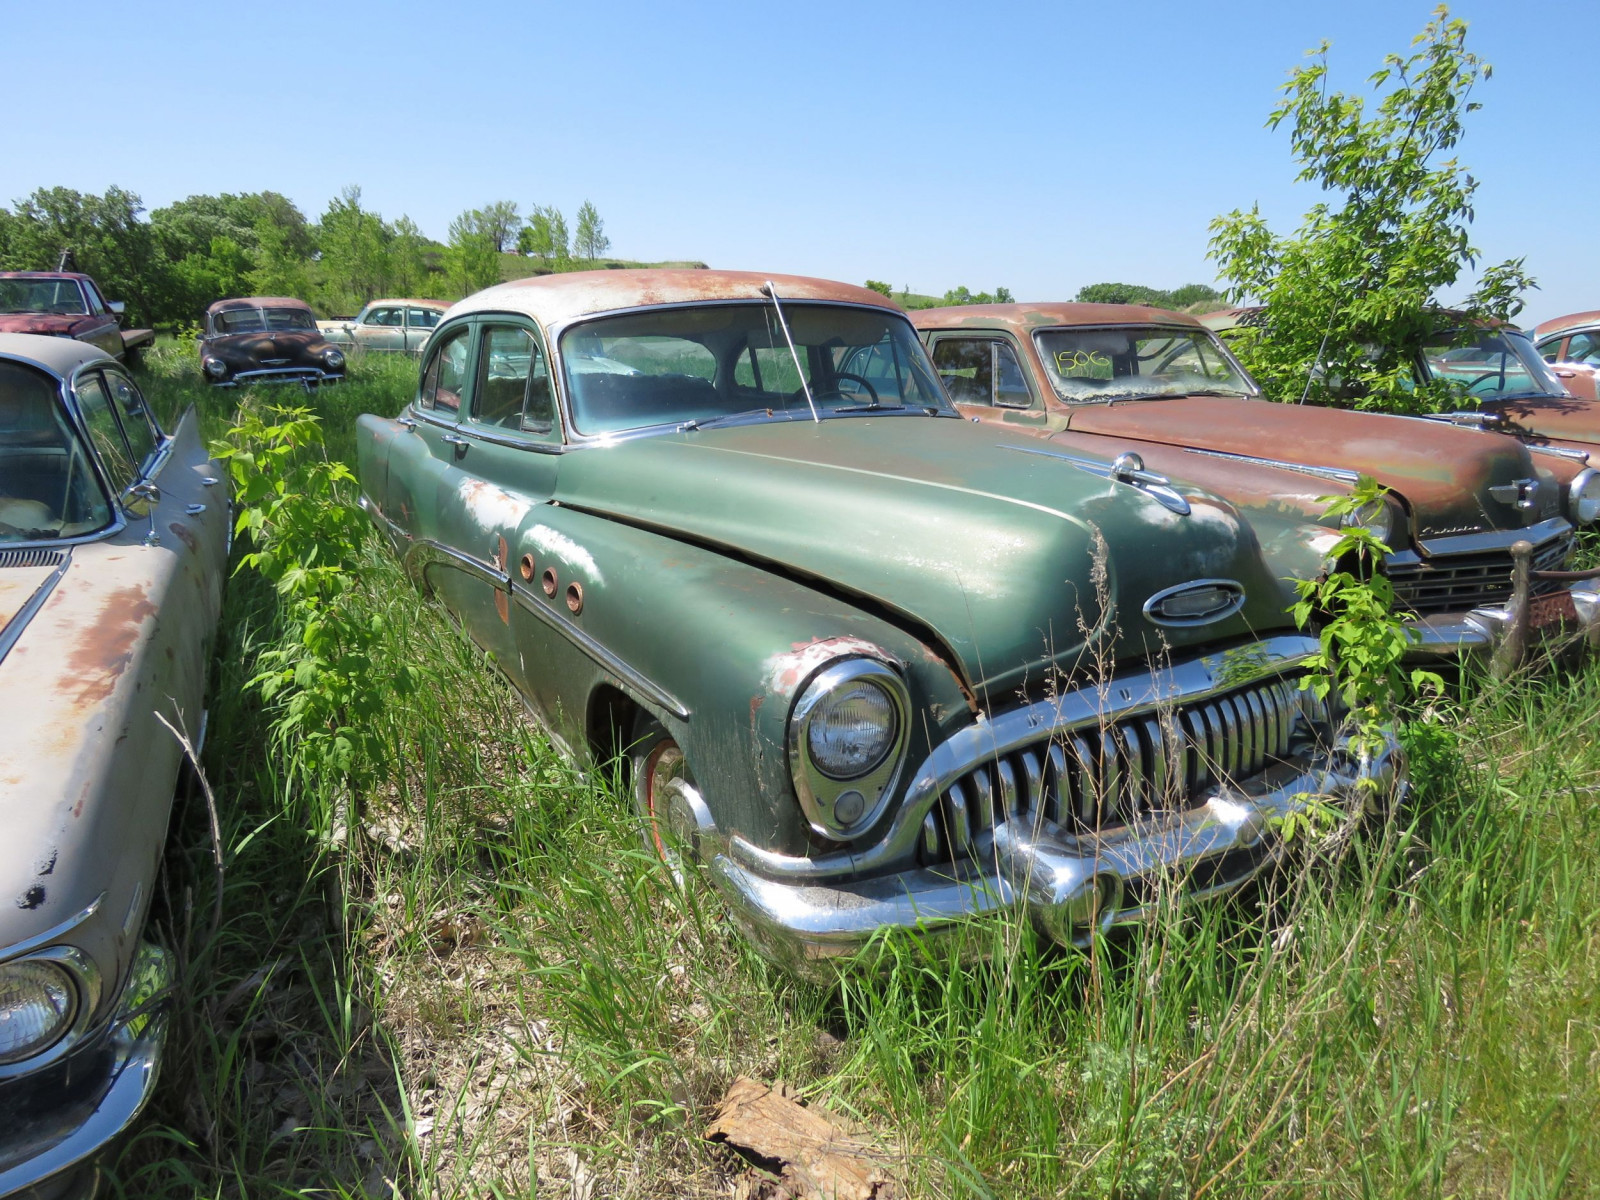 1953 Buick 8 4dr Sedan for Project or parts - Image 2